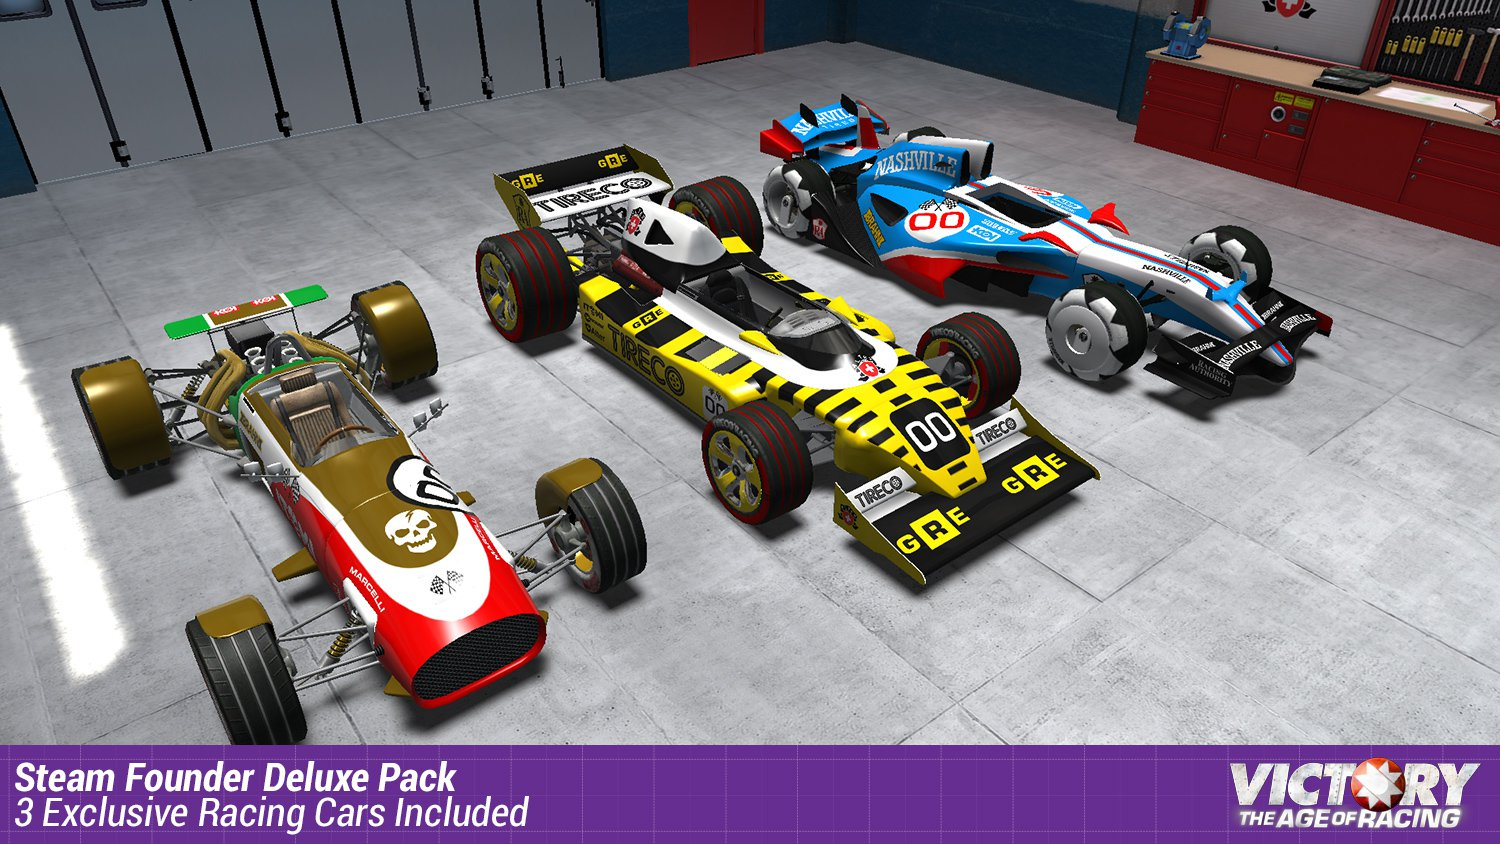 Victory The Age of Racing Steam Founder Pack 16